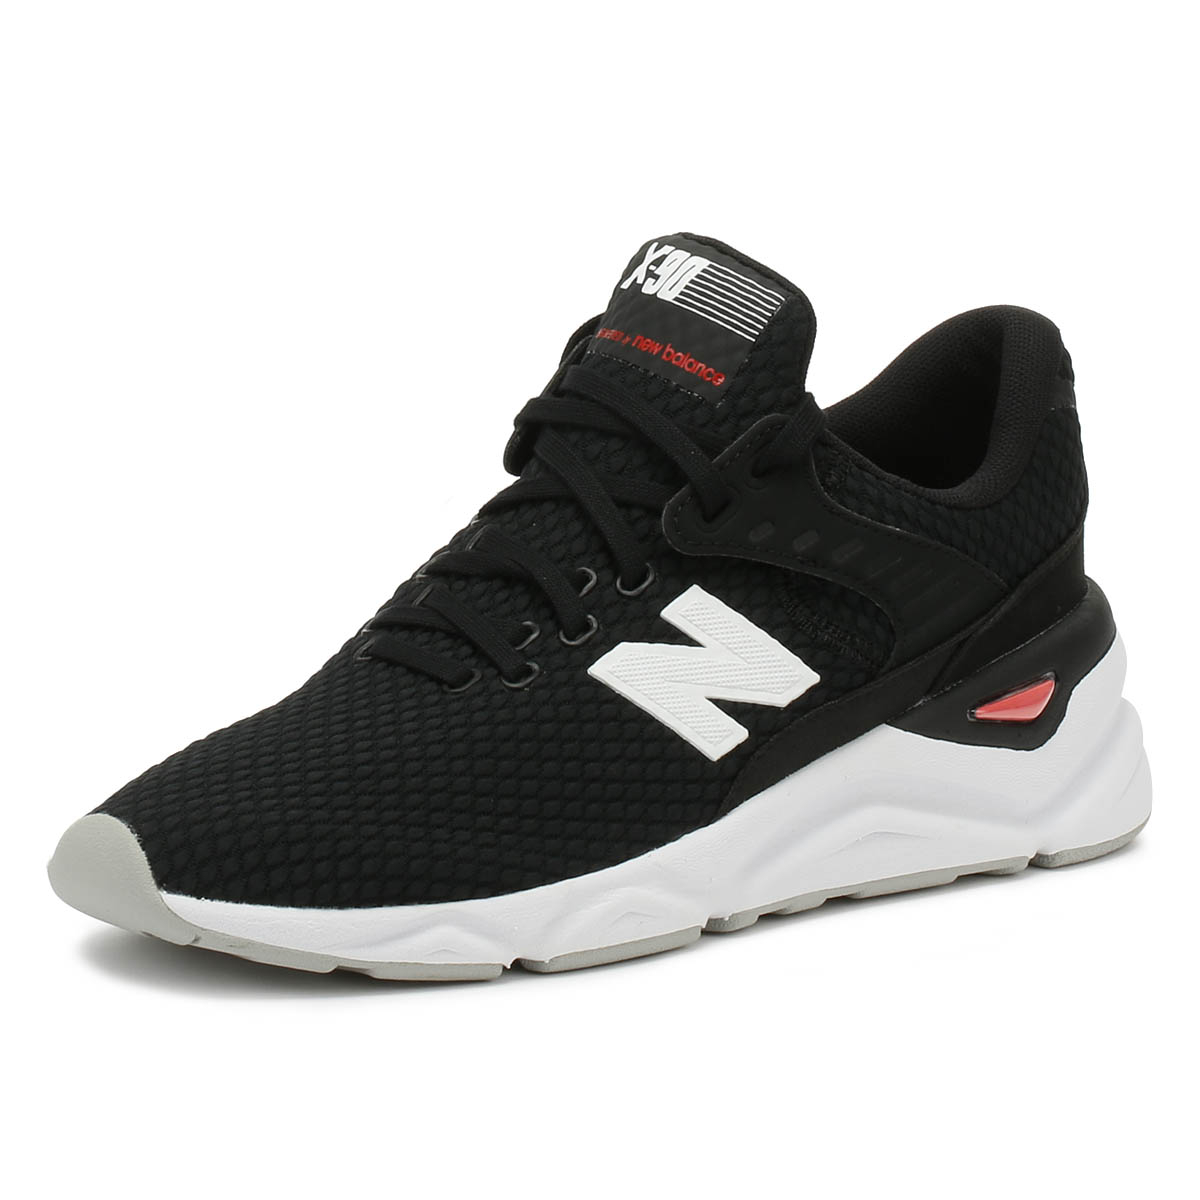 60b7234647bef Details about New Balance Mens Trainers X90 Black / White Casual Lace Up  Sport Running Shoes